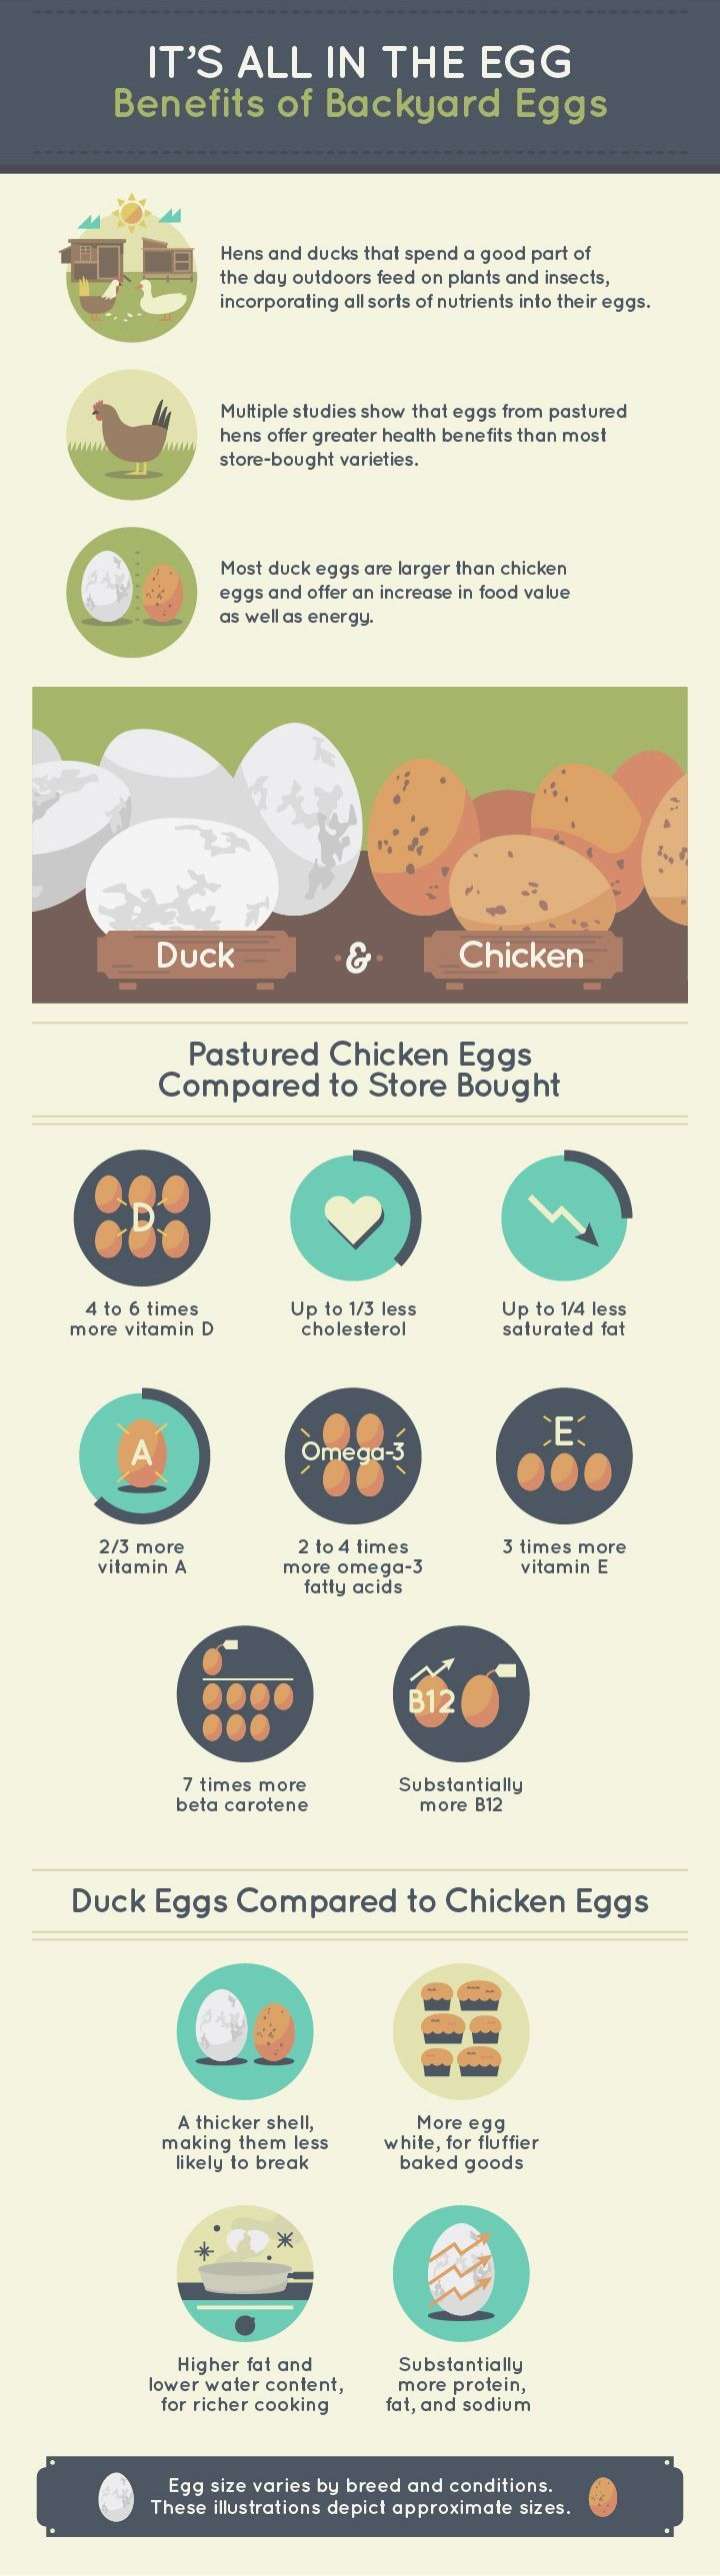 Raising Chickens and Ducks With Ingenuity and DIY Hacks ...